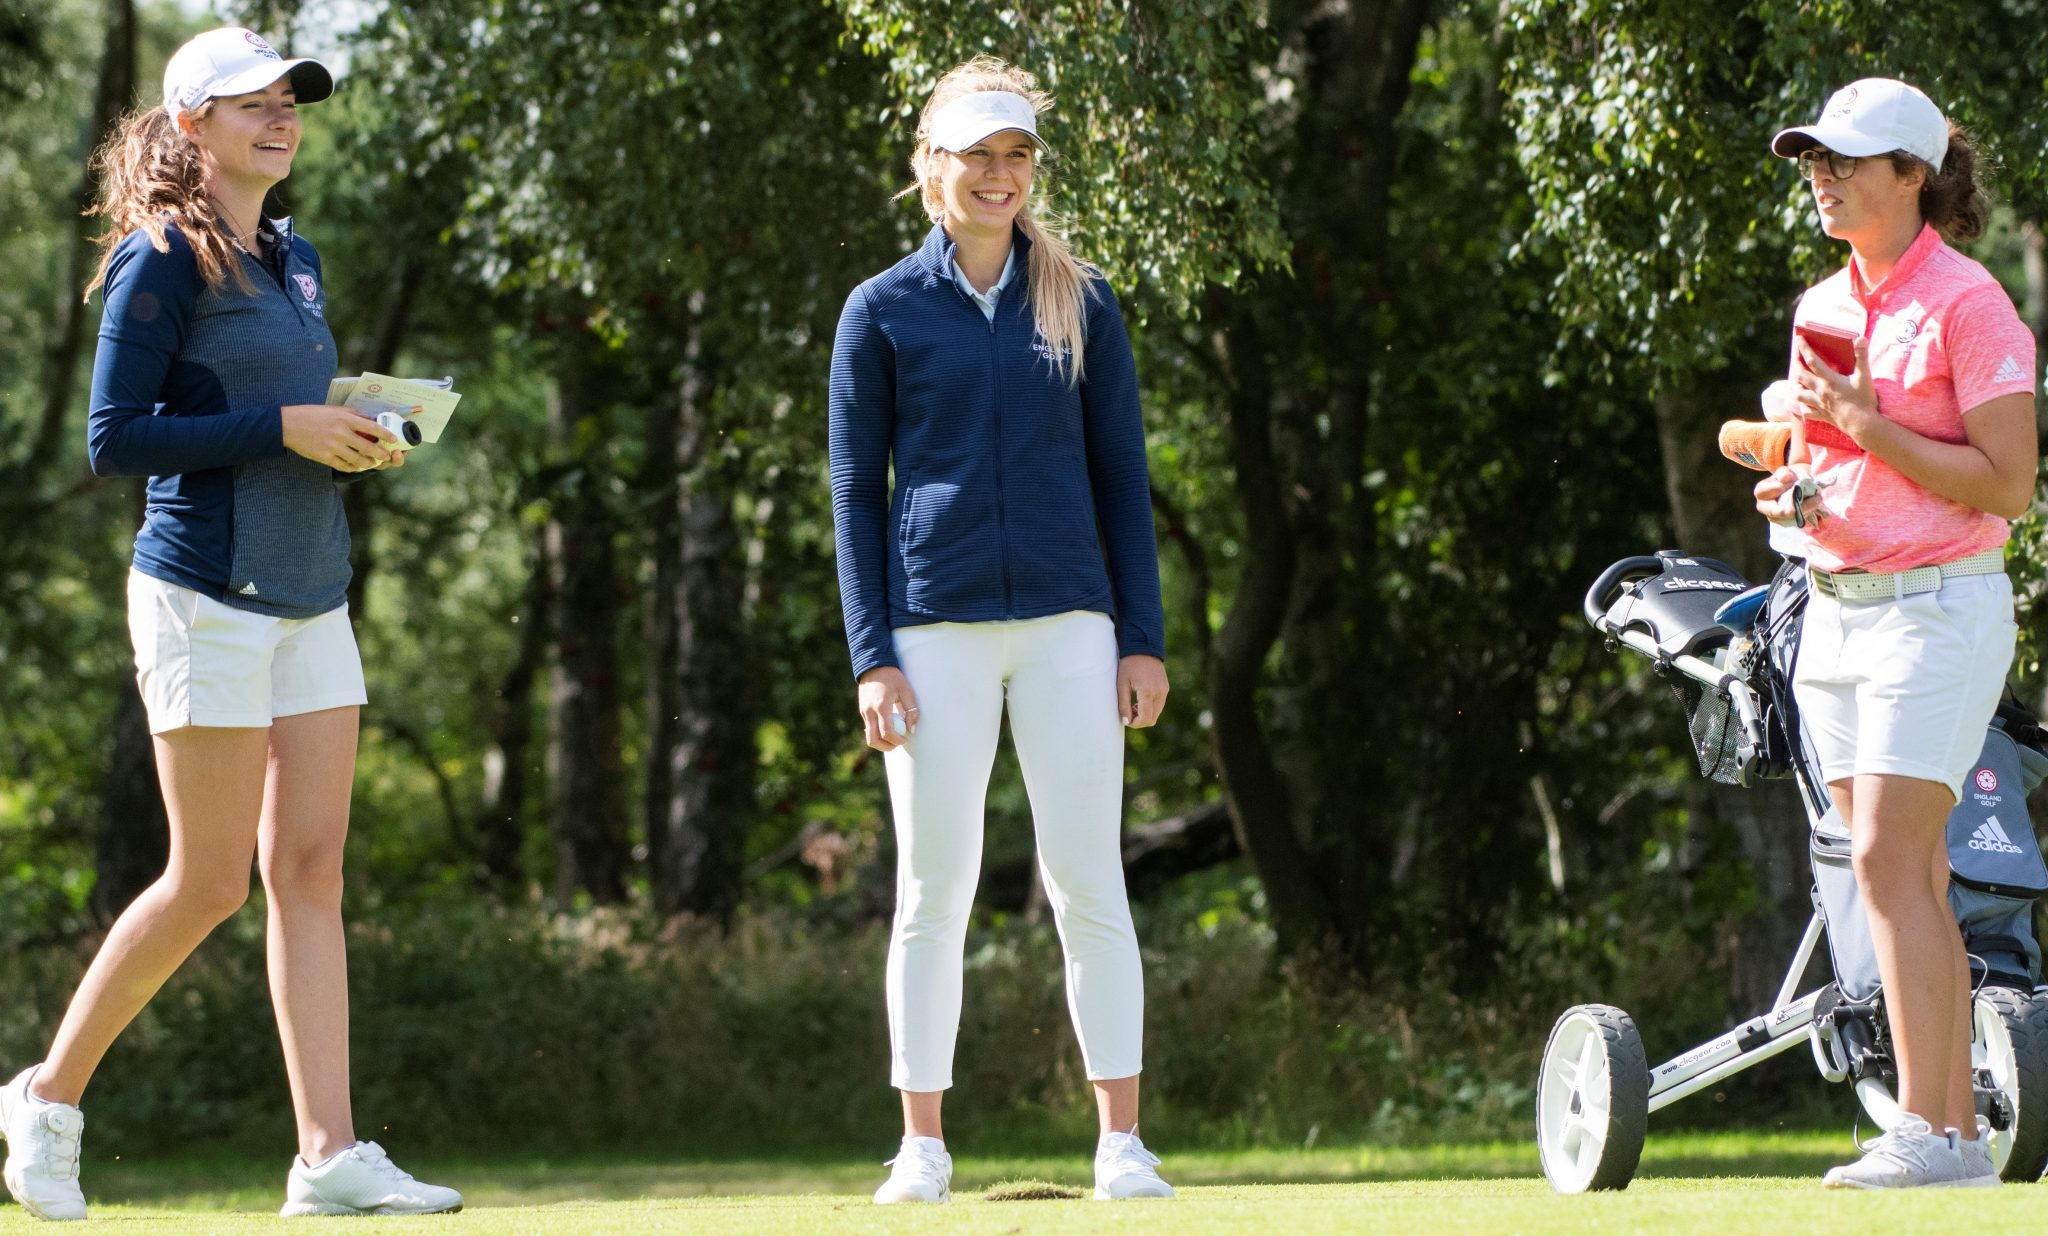 England women's team go for glory at Europeans